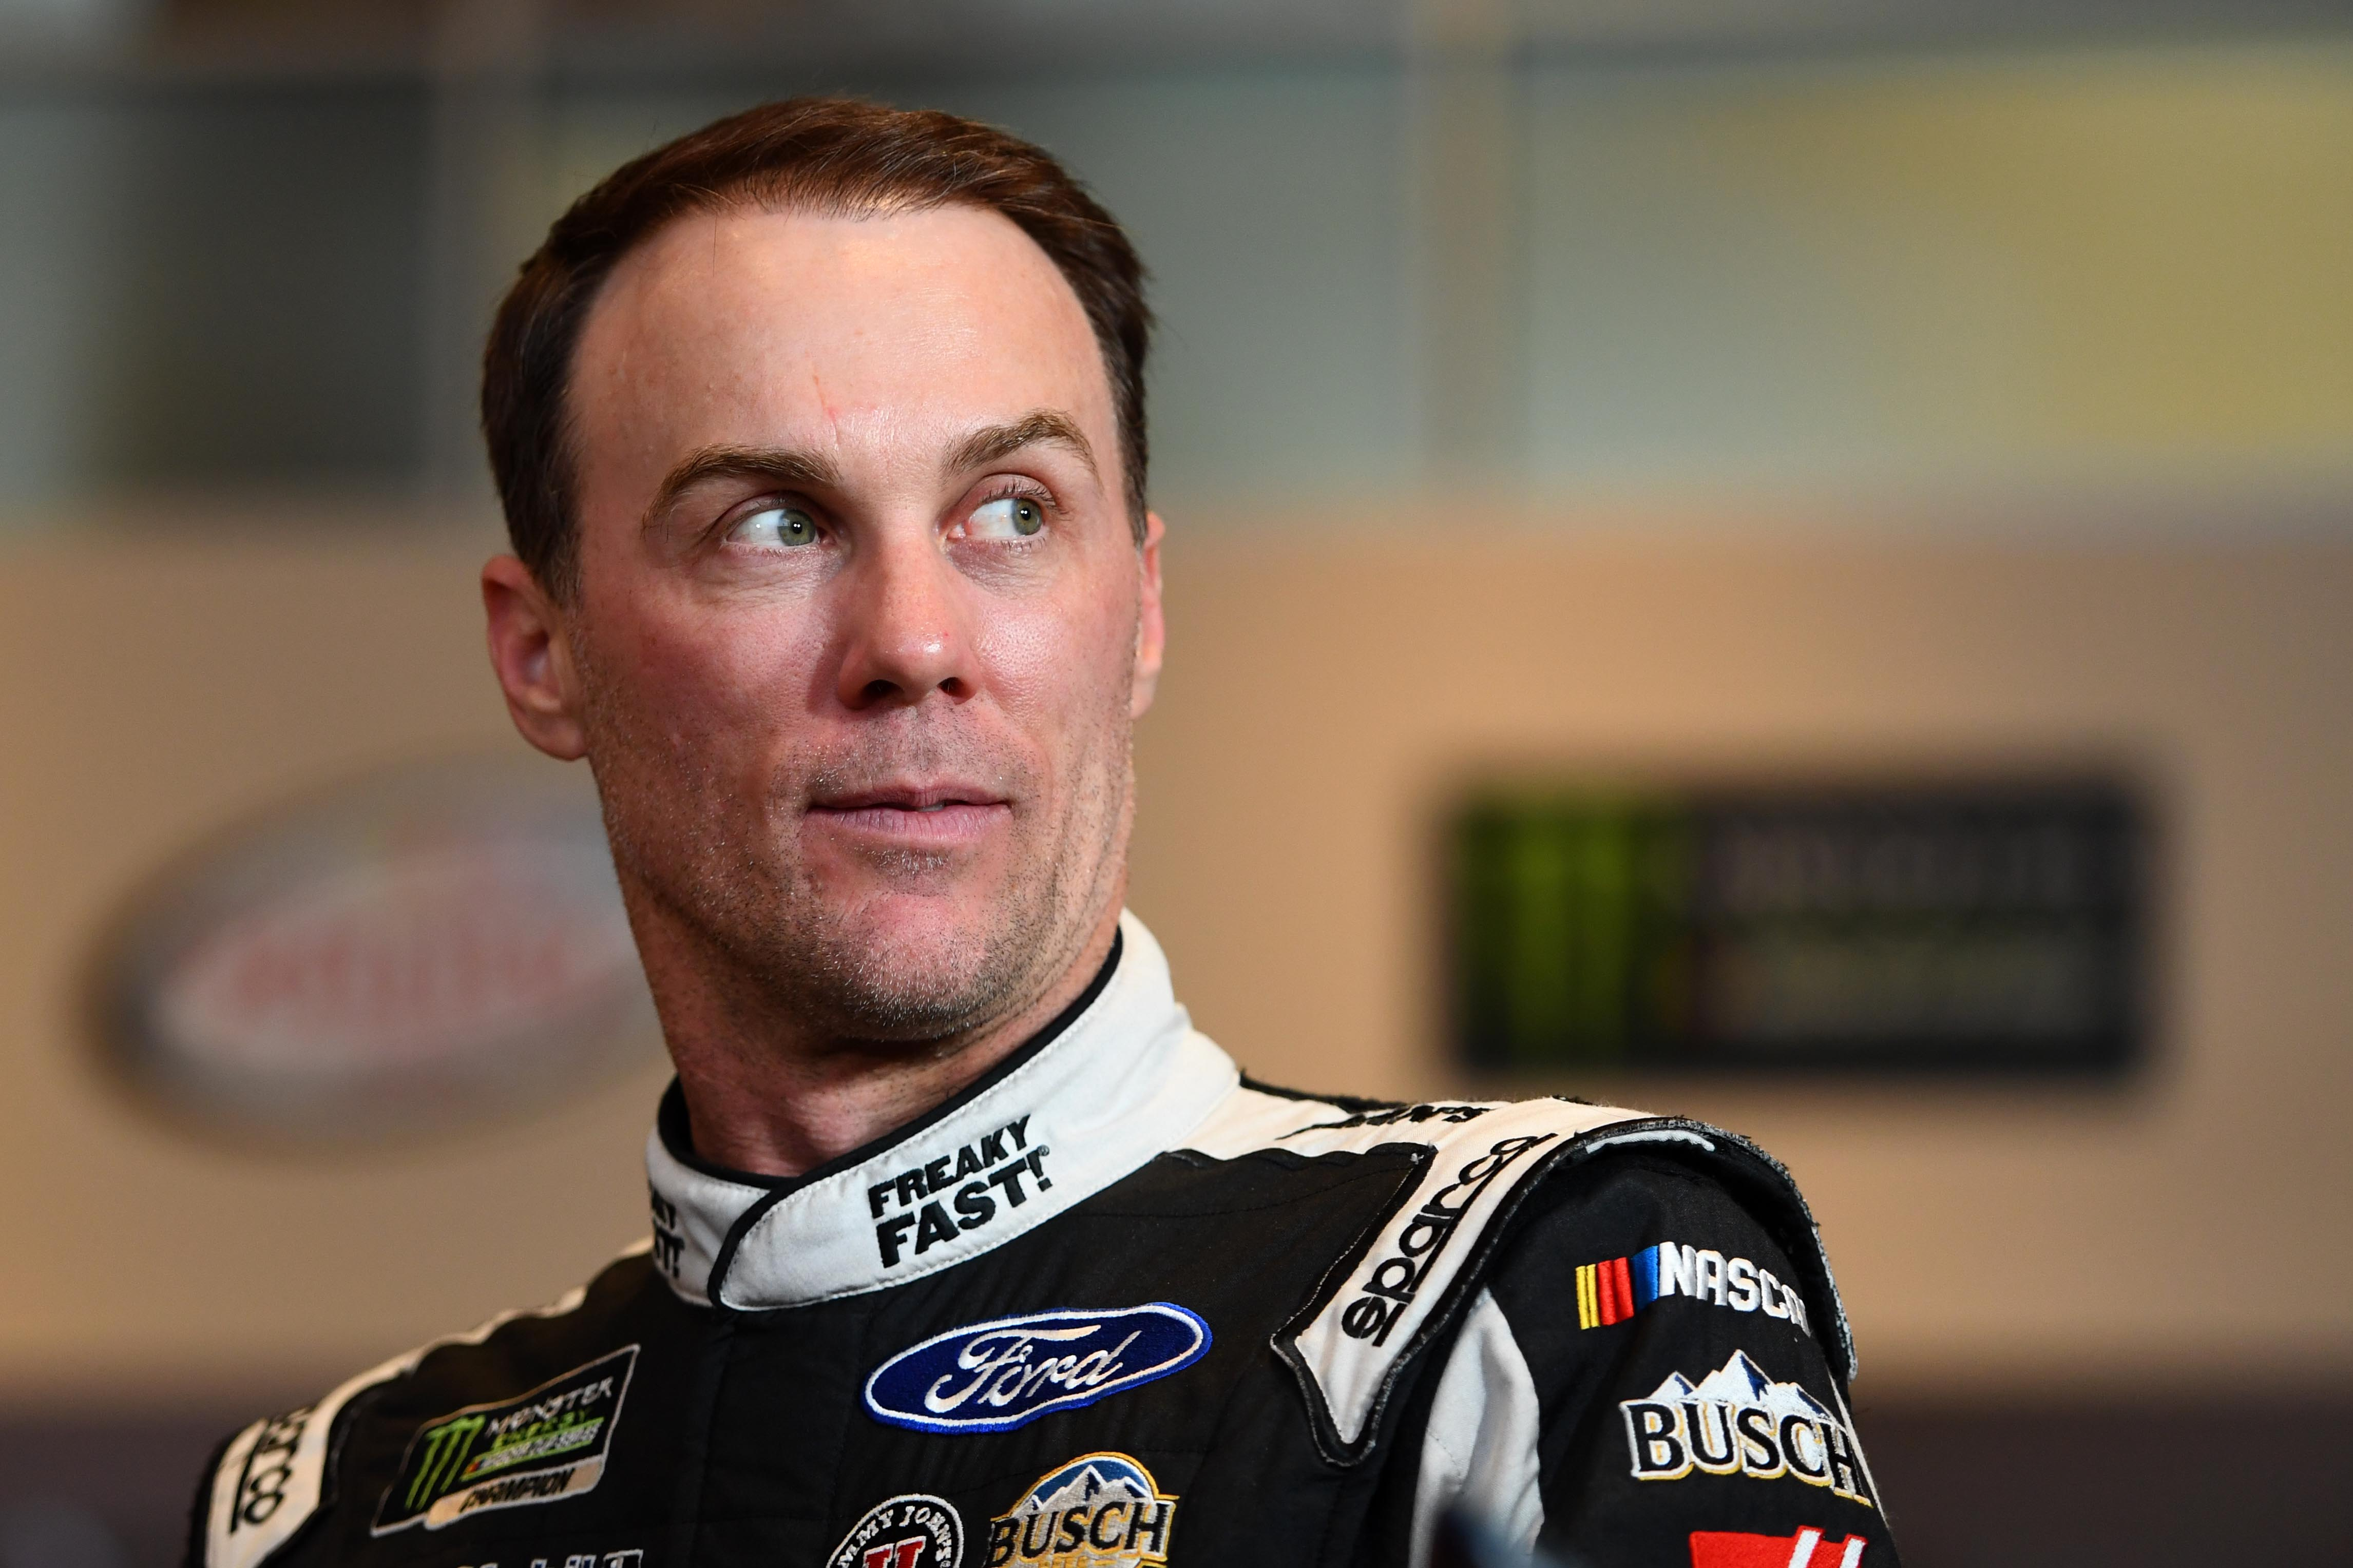 Feb 22, 2017; Daytona Beach, FL, USA; NASCAR Cup Series driver Kevin Harvick during Daytona 500 media day at Daytona International Speedway. Mandatory Credit: Mike DiNovo-USA TODAY Sports